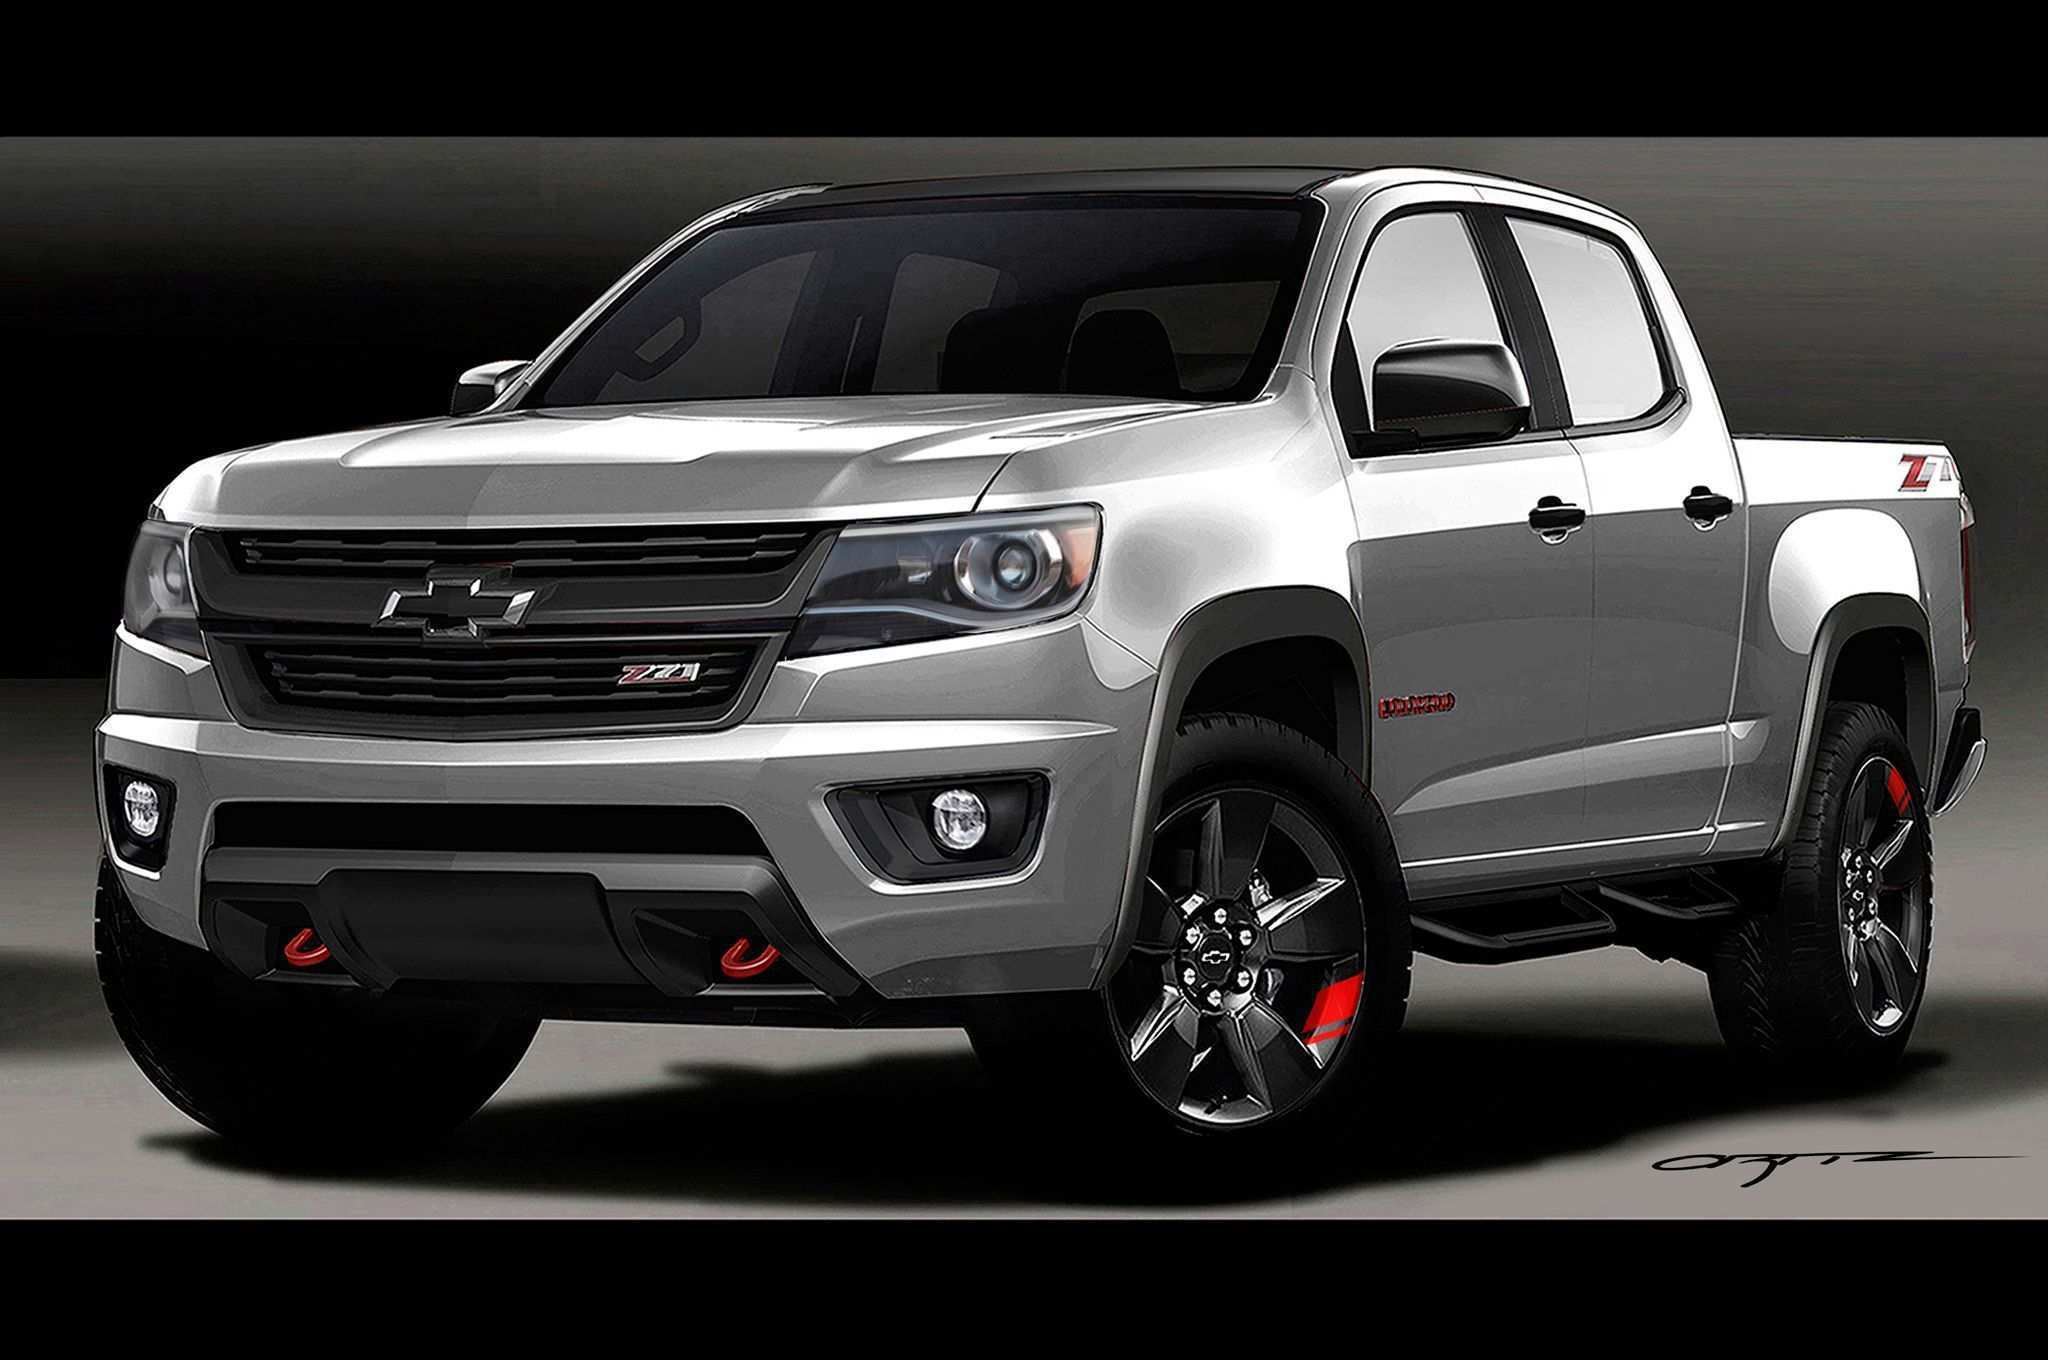 79 All New 2020 Chevy Colorado Model for 2020 Chevy Colorado